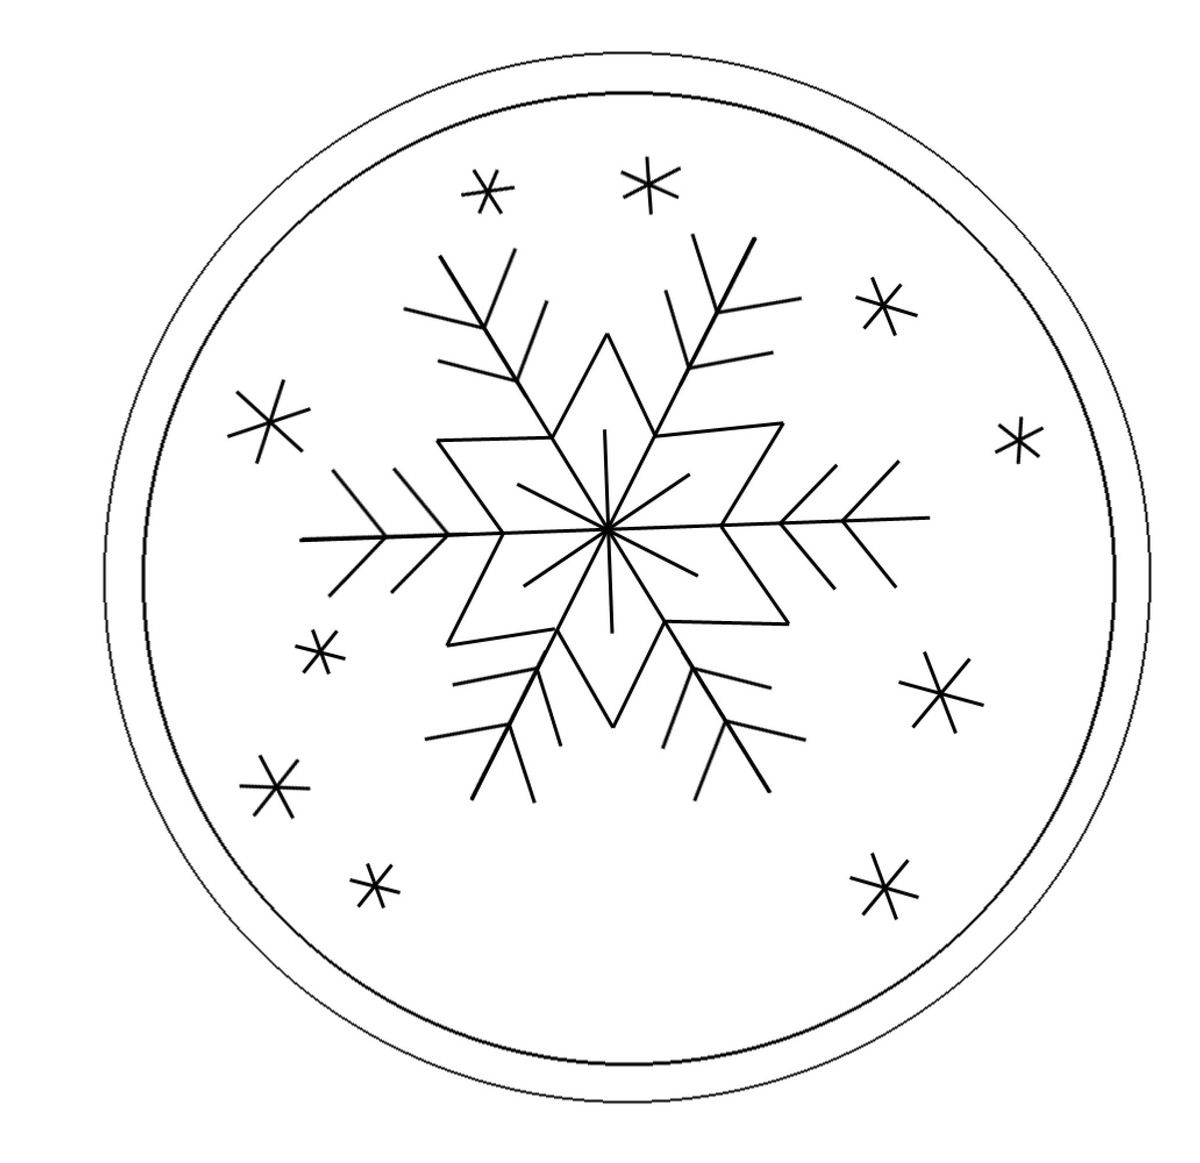 simple snowflake pattern with year space